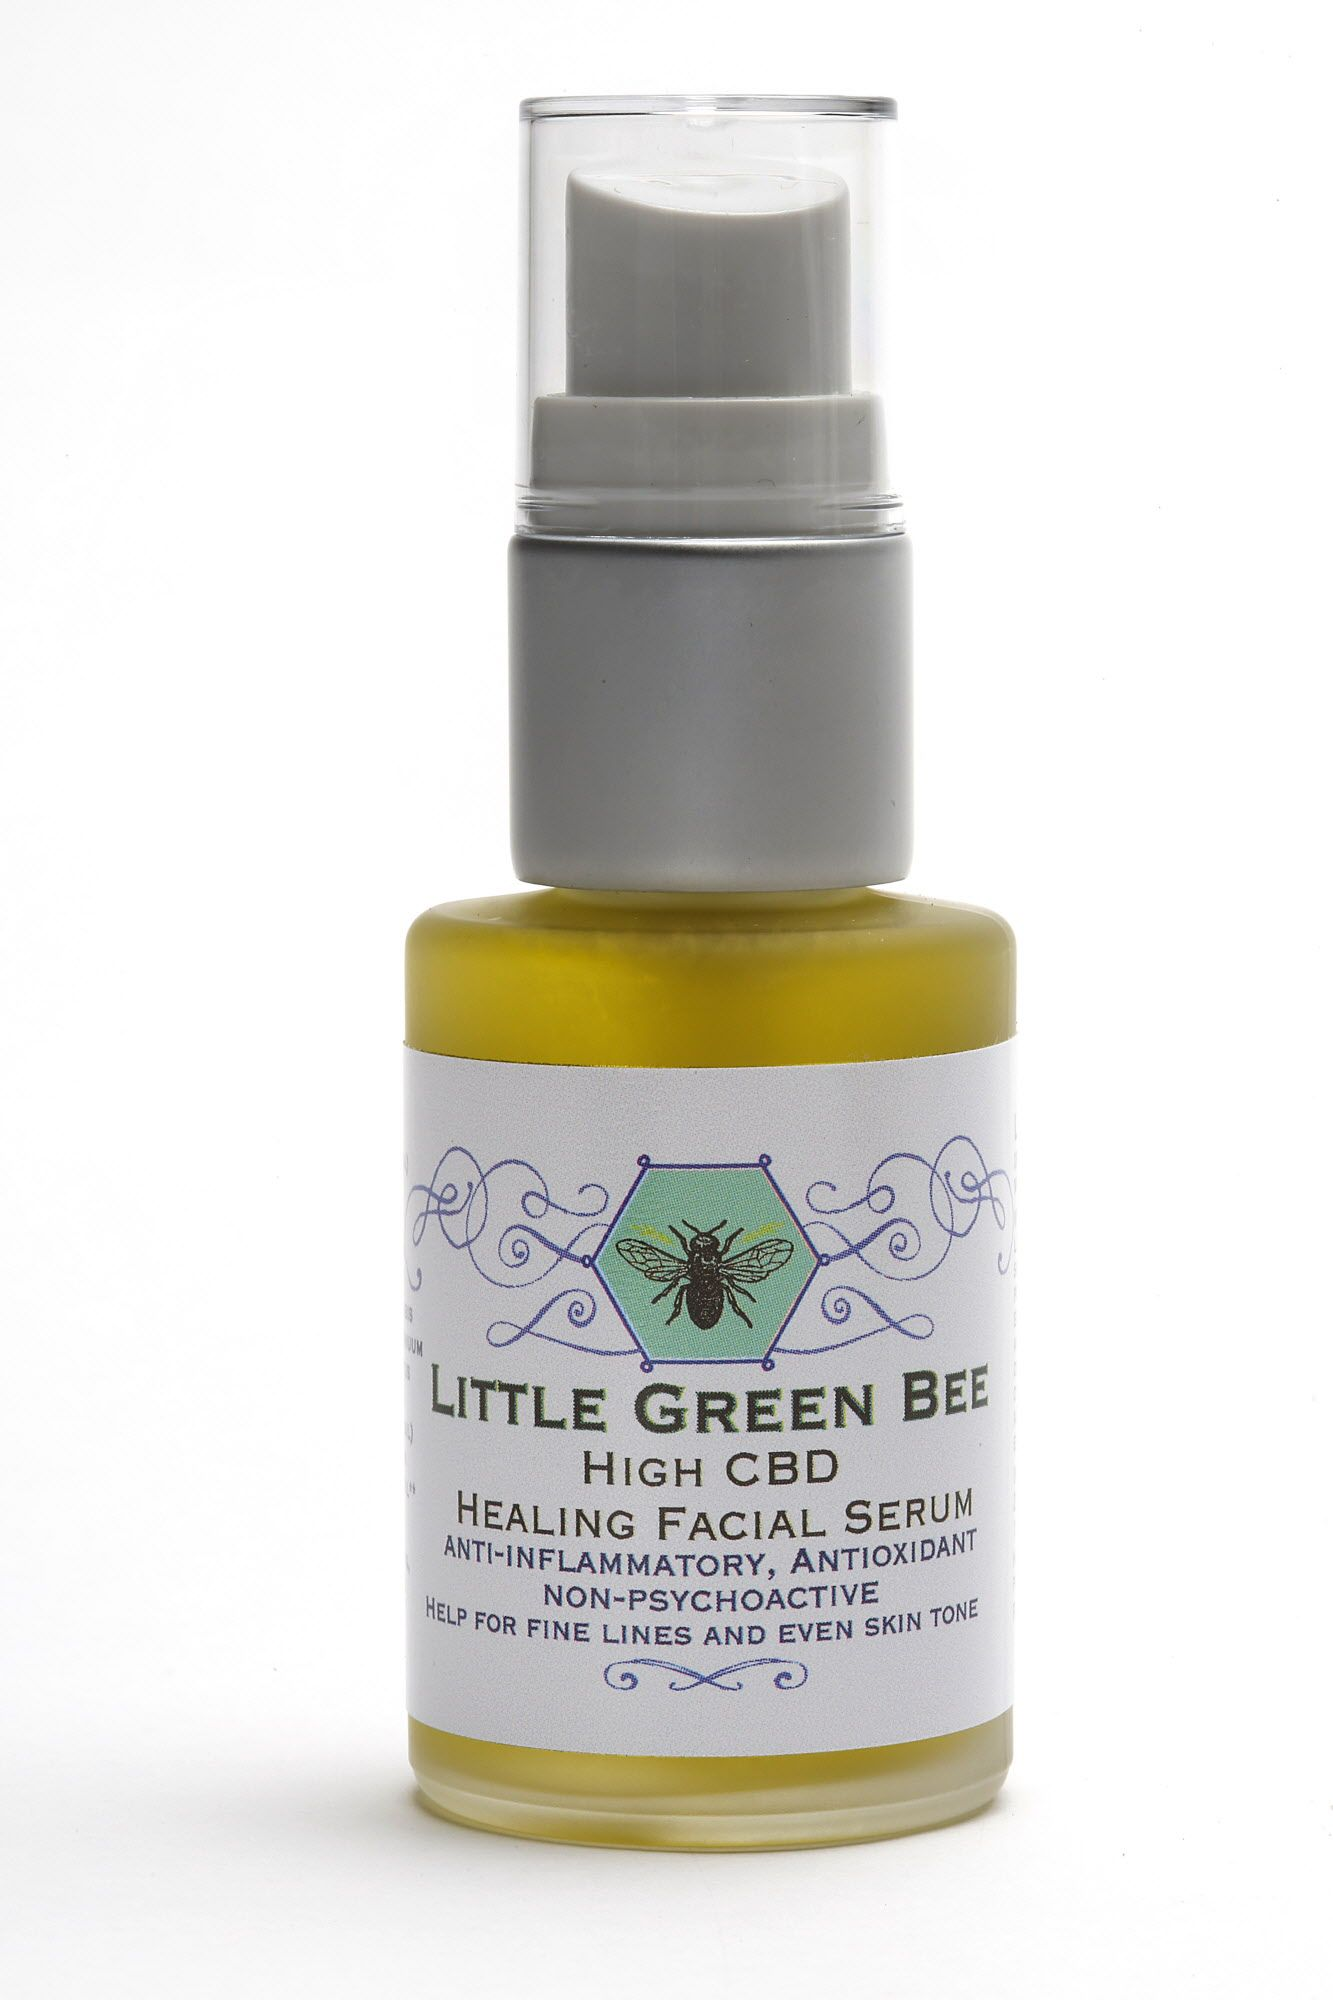 'Little Green Bee', a healing facial serum high in CBD on Wednesday, June 7, 2017, in San Francisco, Calif.